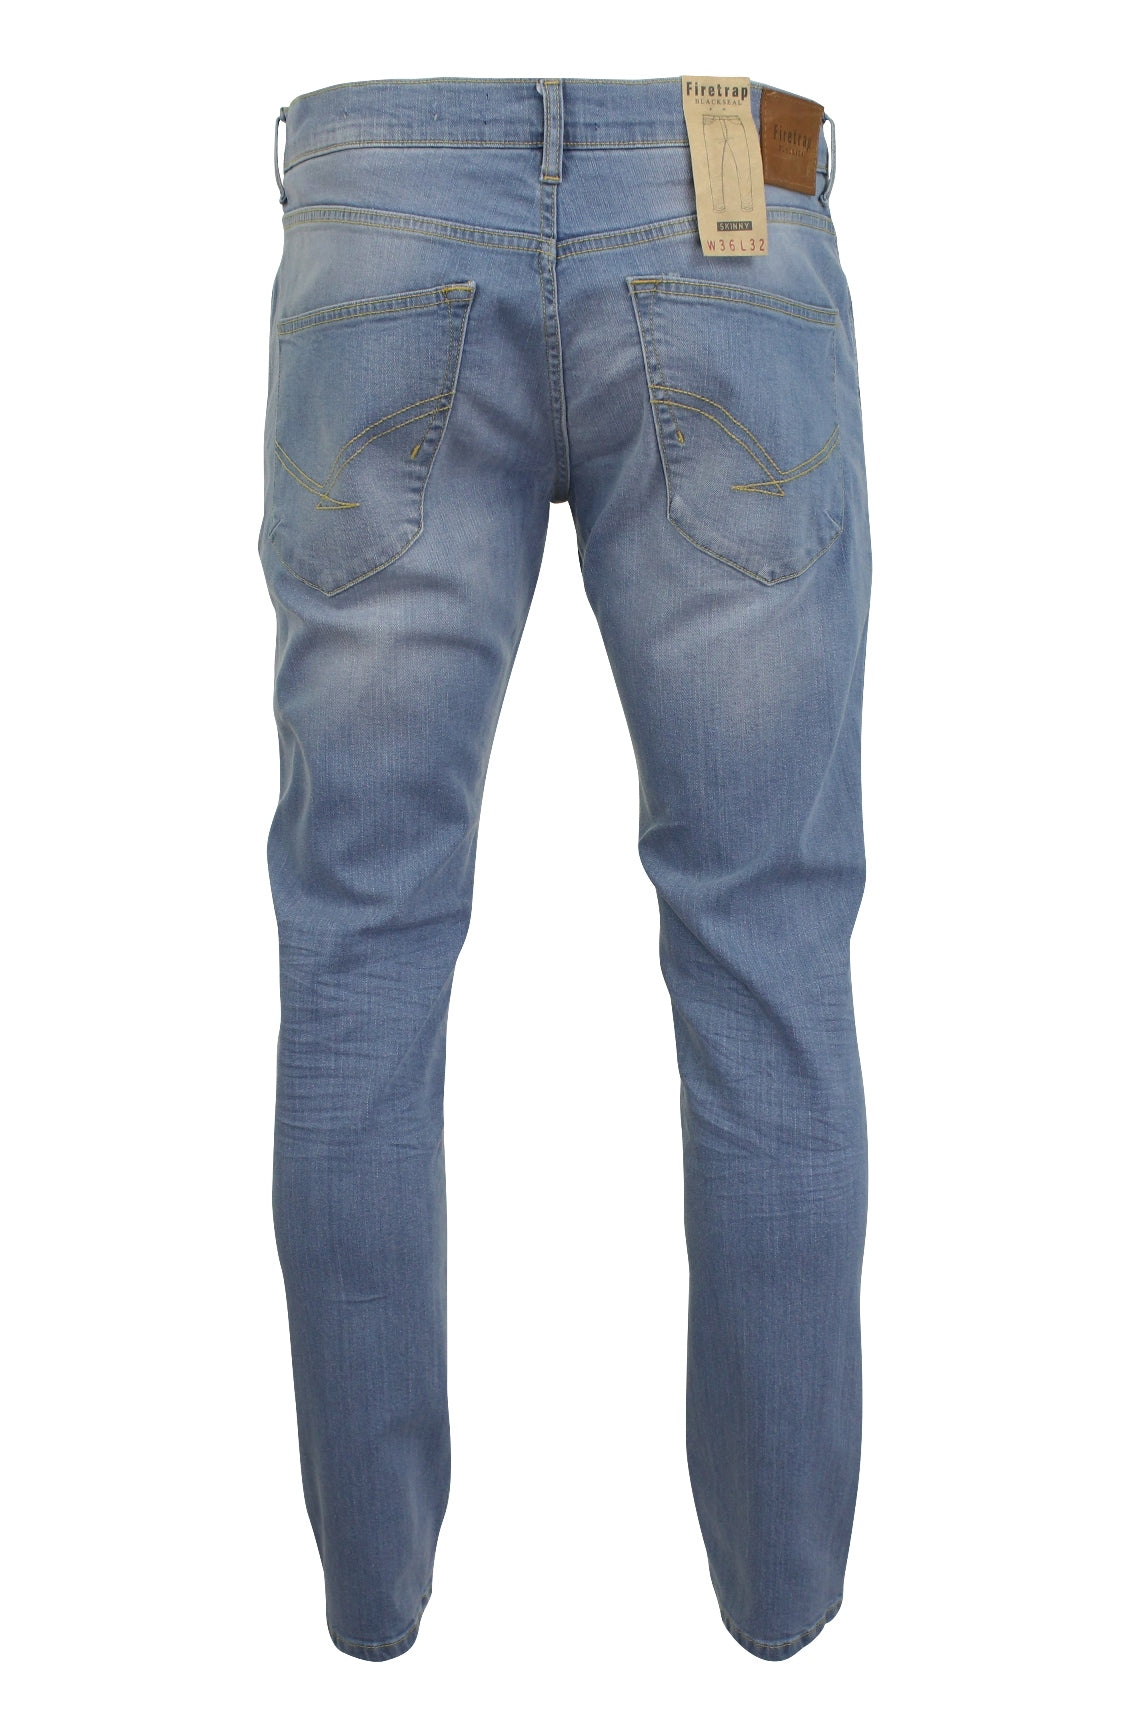 Mens Jeans by Firetrap 'Denhoff' Skinny Fit with Button Fly-3